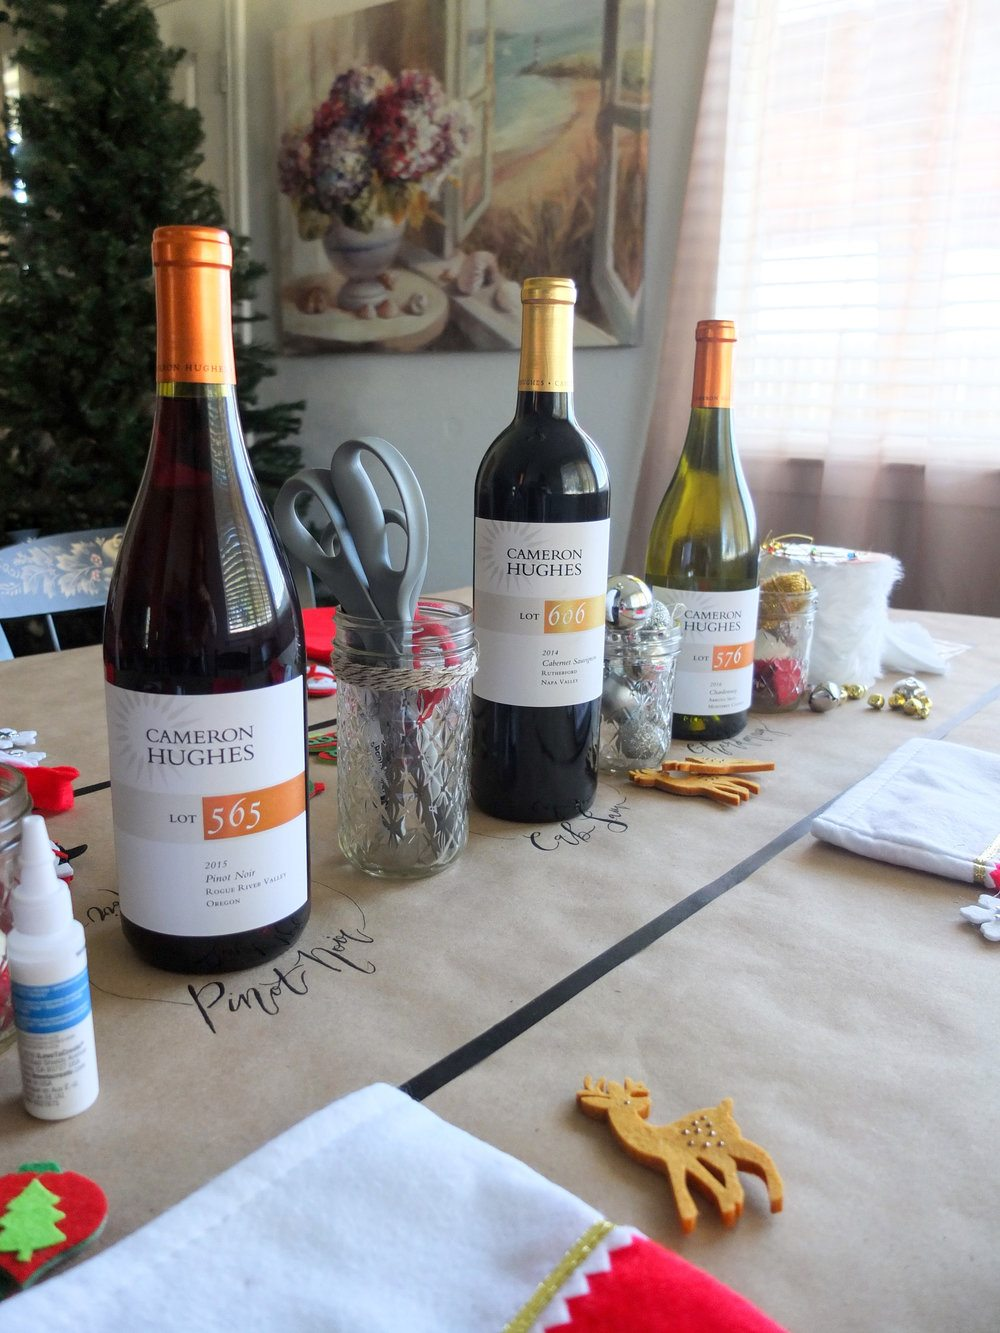 A craft and wine holiday party idea for decorating stockings and enjoying wine. Complete with free printable checklist to create your own D-I-Wine Stocking Party. Also perfect for girls night or girls wine and craft night. Great holiday party idea. Tacky sweater party idea. MSG 21+, please drink responsibly. #ad #CHWineHoliday // www.elletalk.com #holiday #holidayparty #partyideas #crafting #diy #wine #winenight #winetasting #wineparty #holidayideas #chris